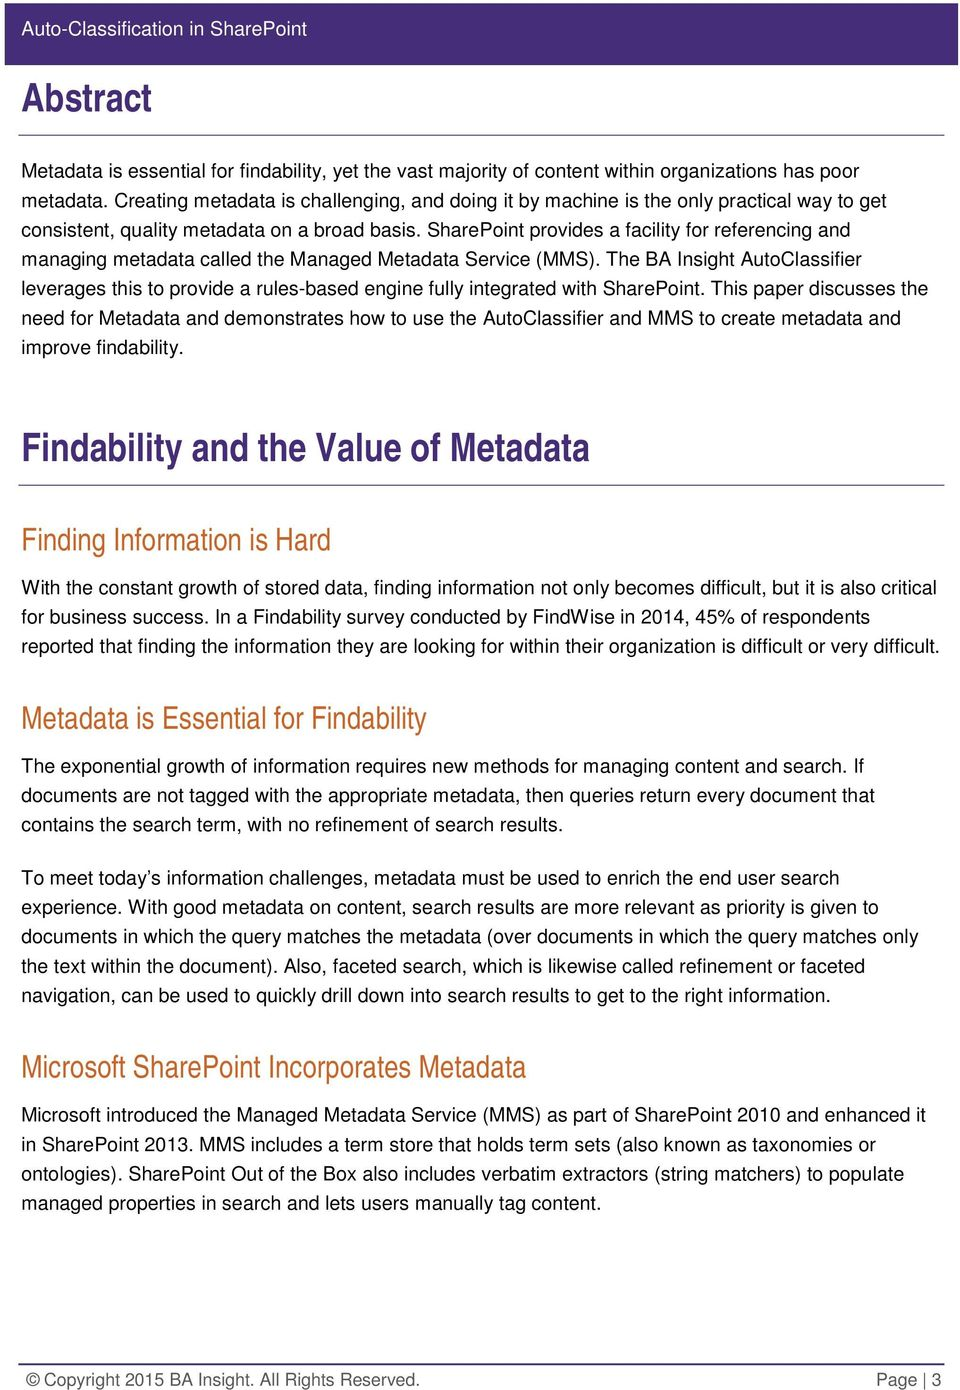 SharePoint provides a facility for referencing and managing metadata called the Managed Metadata Service (MMS).